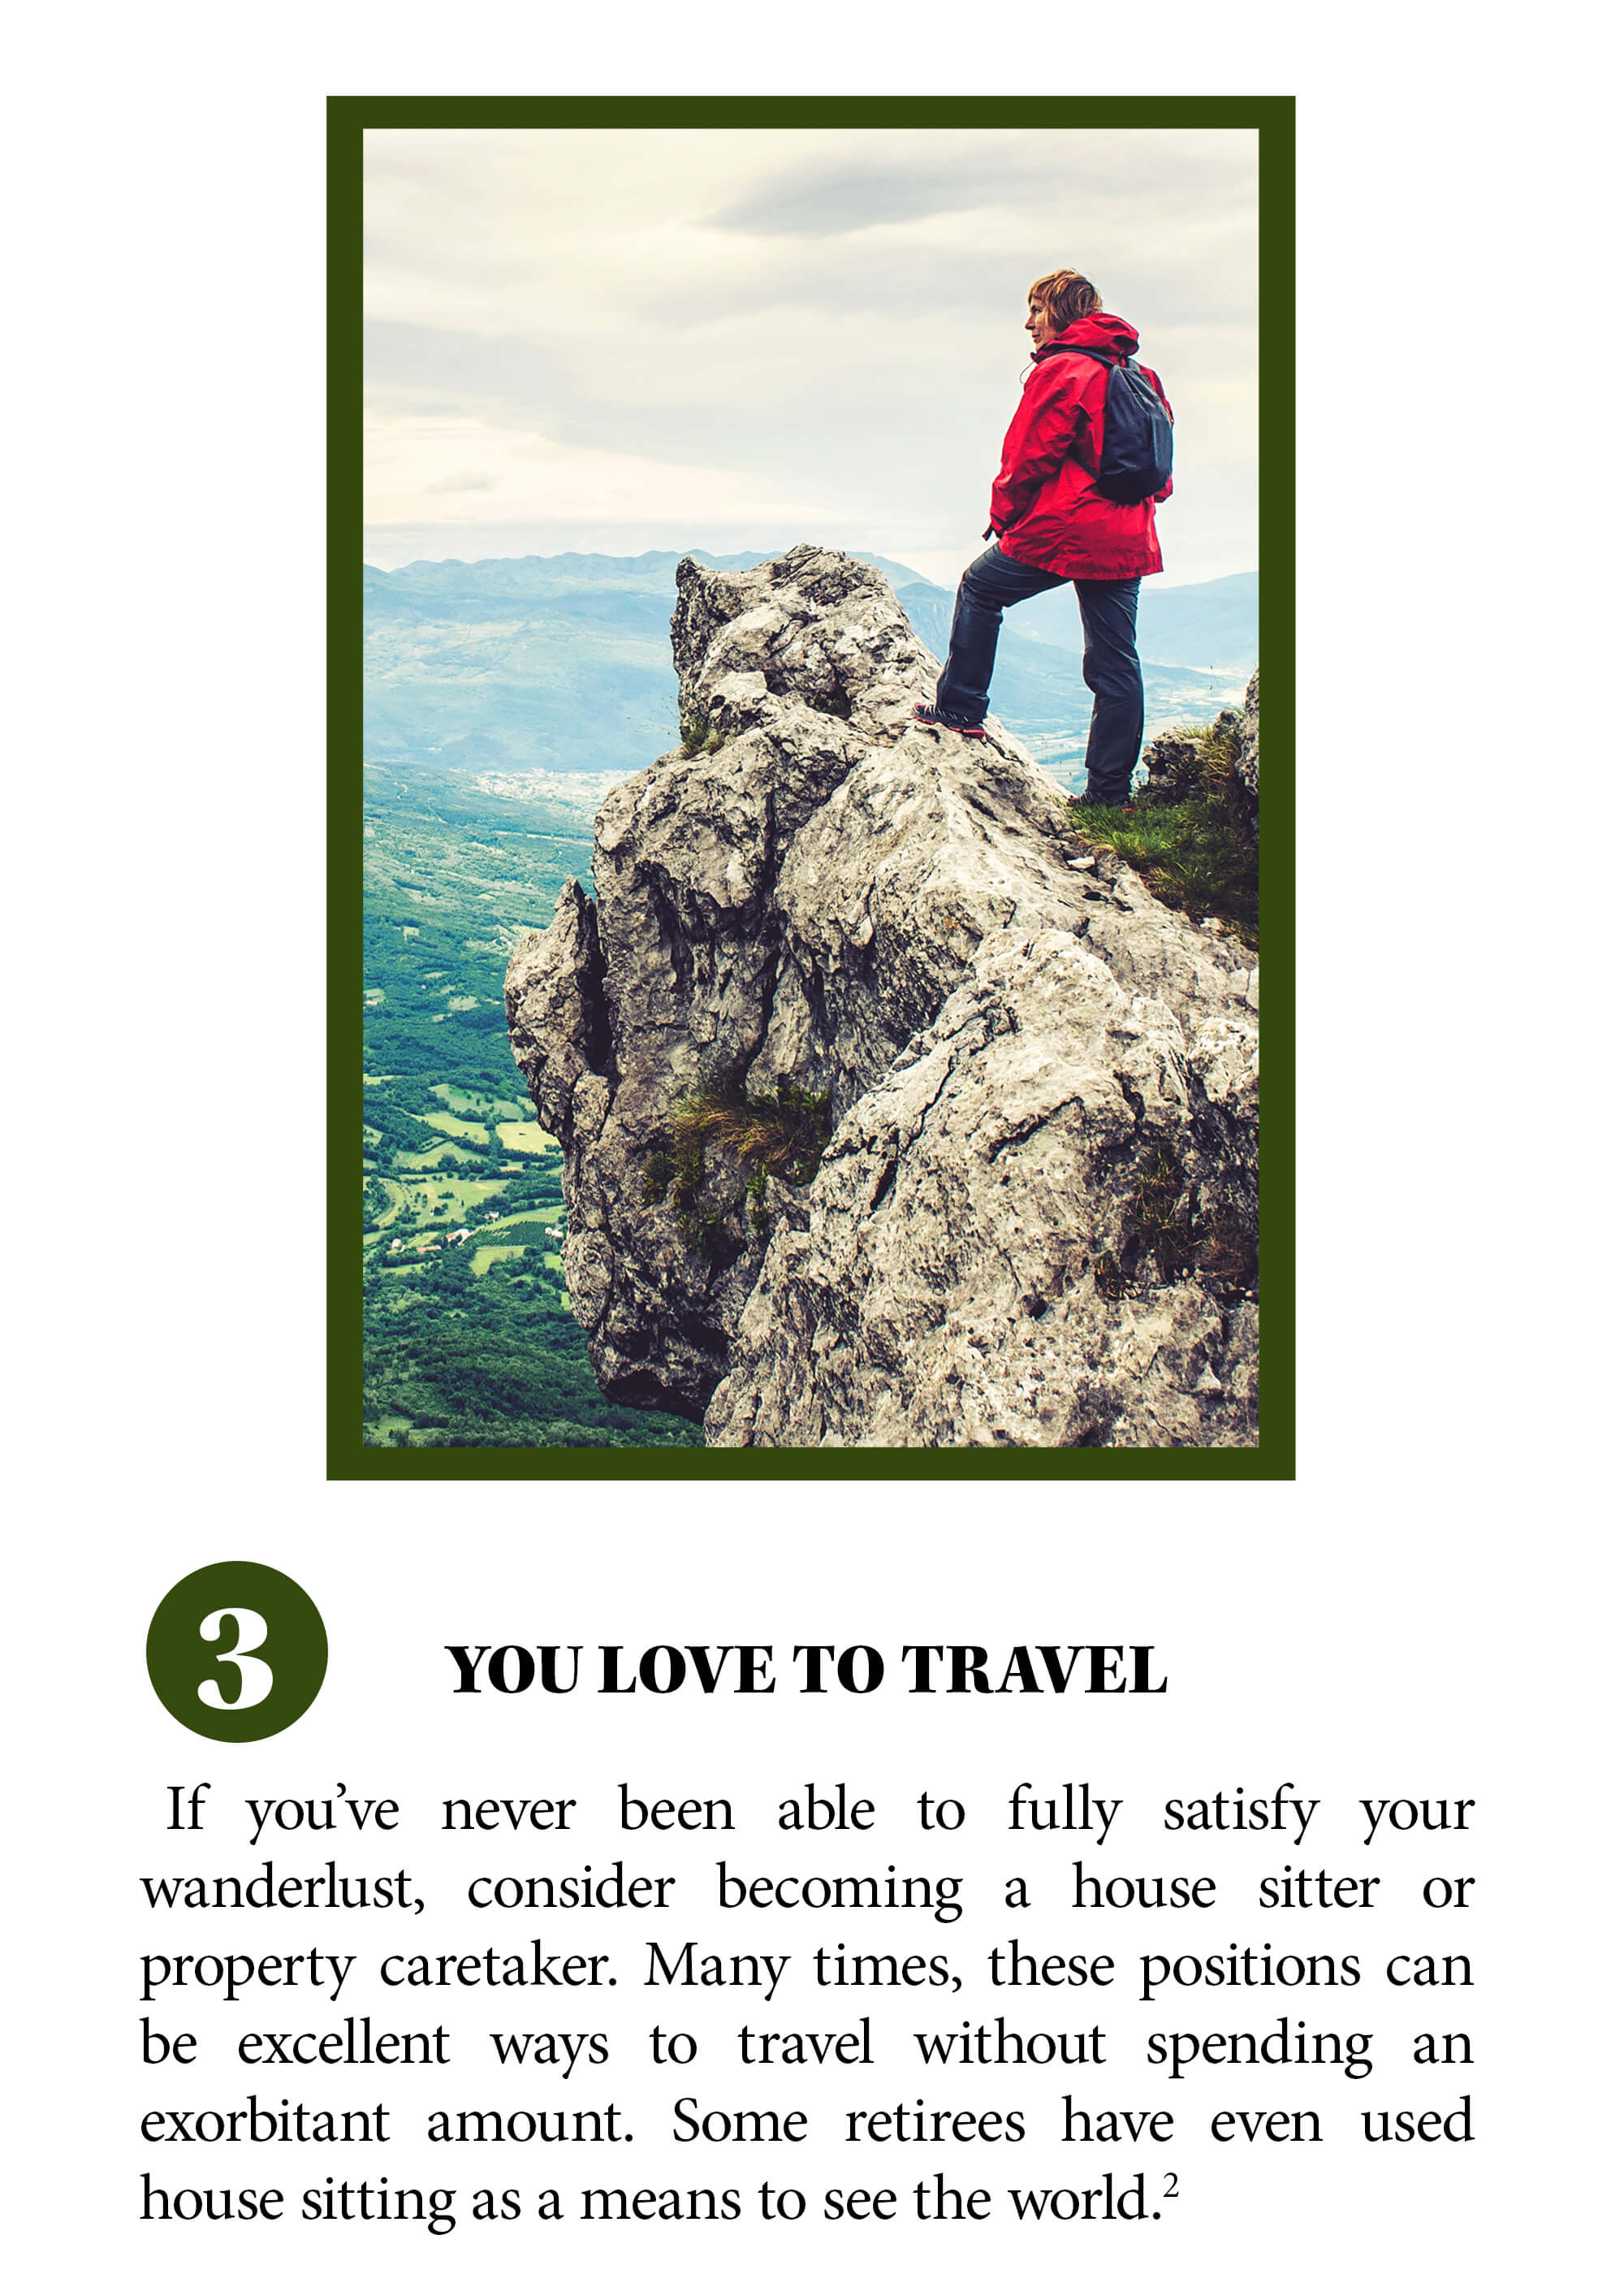 You love to travel. If you've never been able to fully satisfy your wanderlust, consider becoming a house sitter or property caretaker. Many times, these positions can be excellent ways to travel without spending an exorbitant amount. Some retirees have even used house sitting as a means to see the world. Source 2.